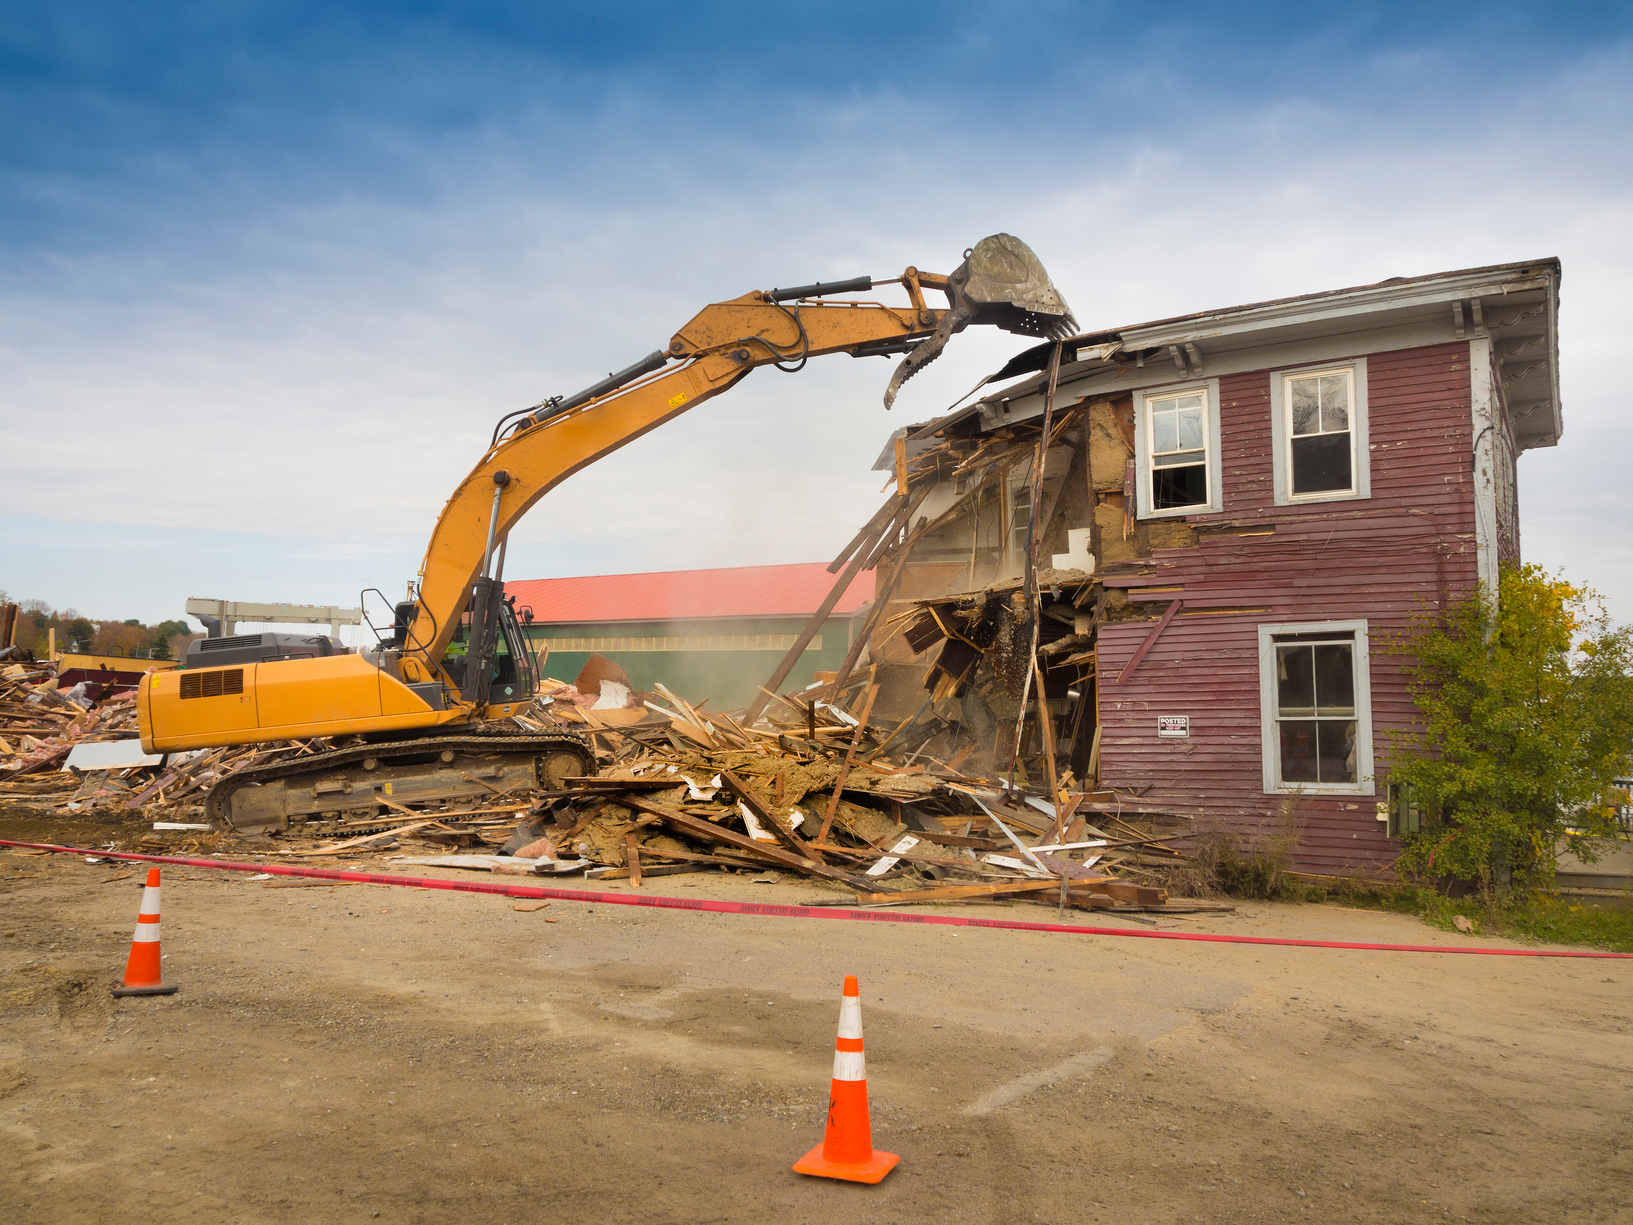 Excavator demolishing an old red wooden building